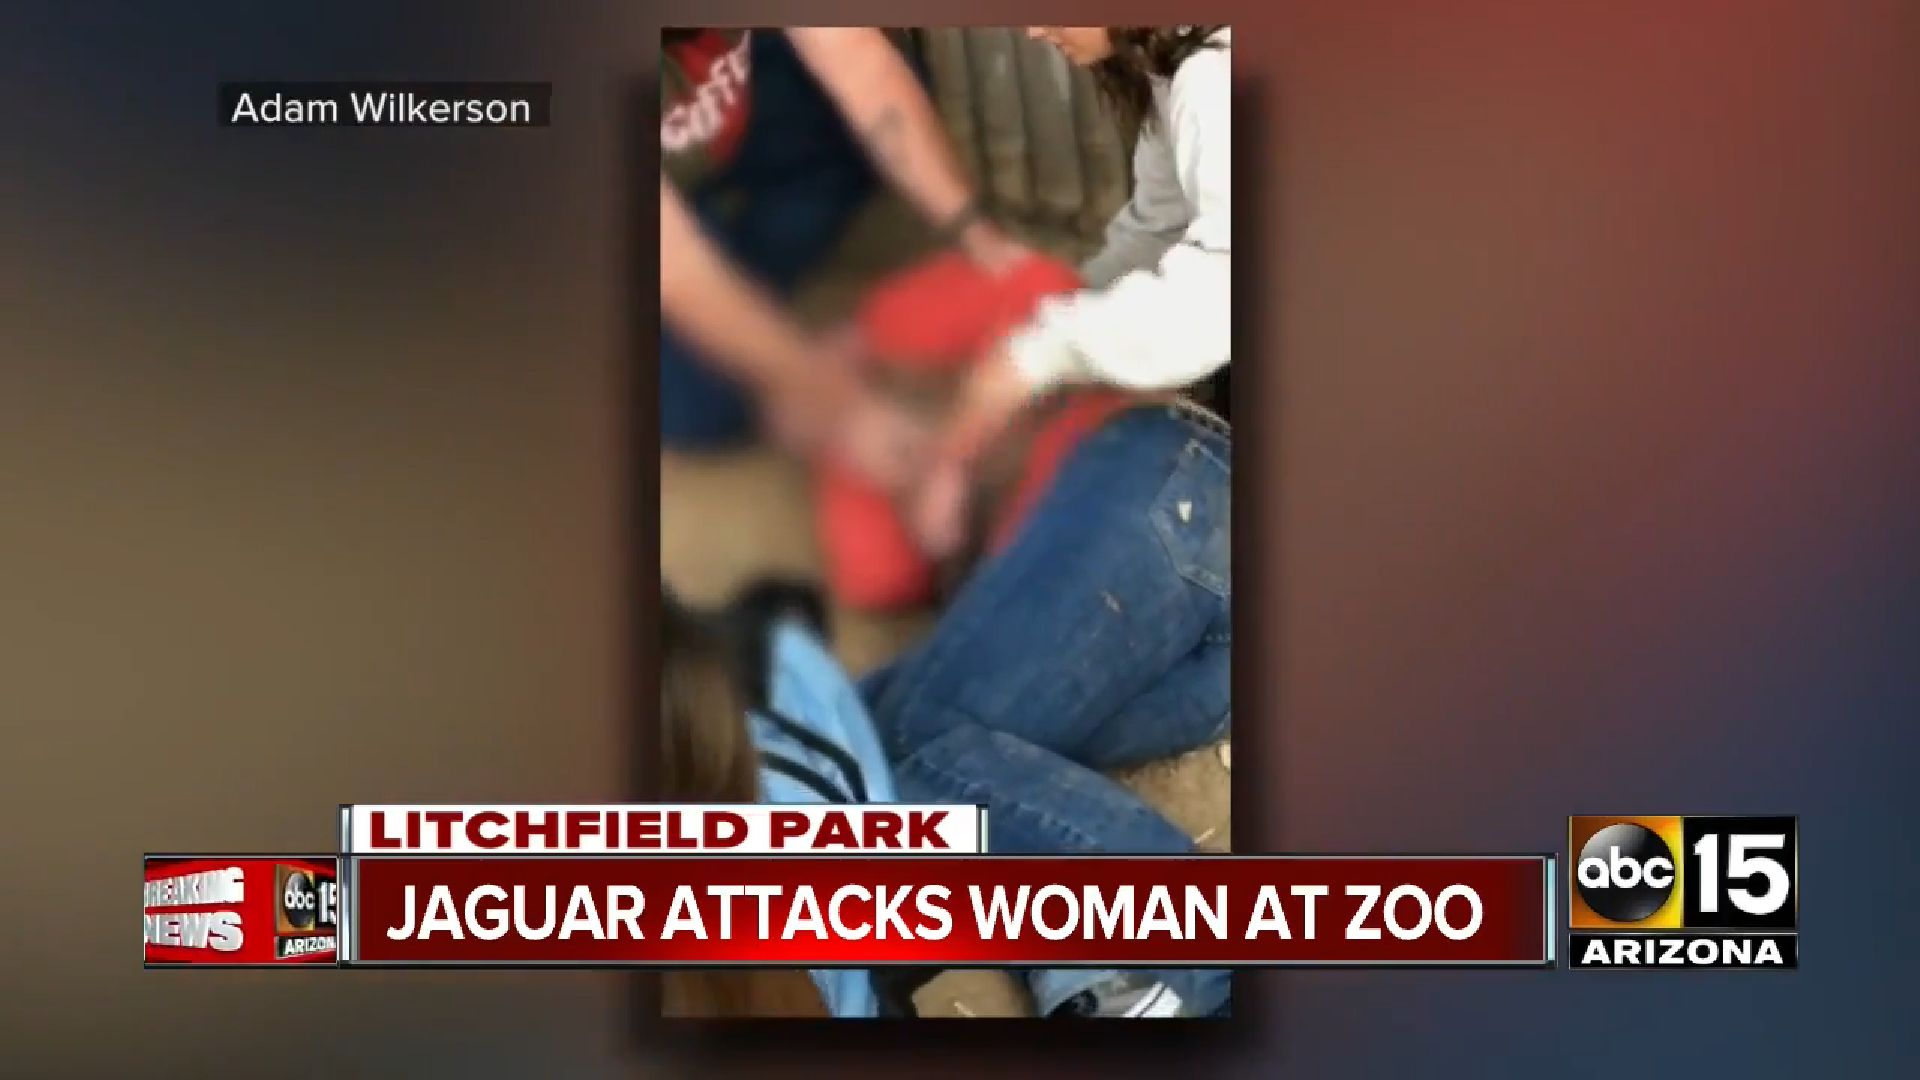 Graphic video taken by another park guest captured the woman screaming in pain after sustaining a deep wound to her arm